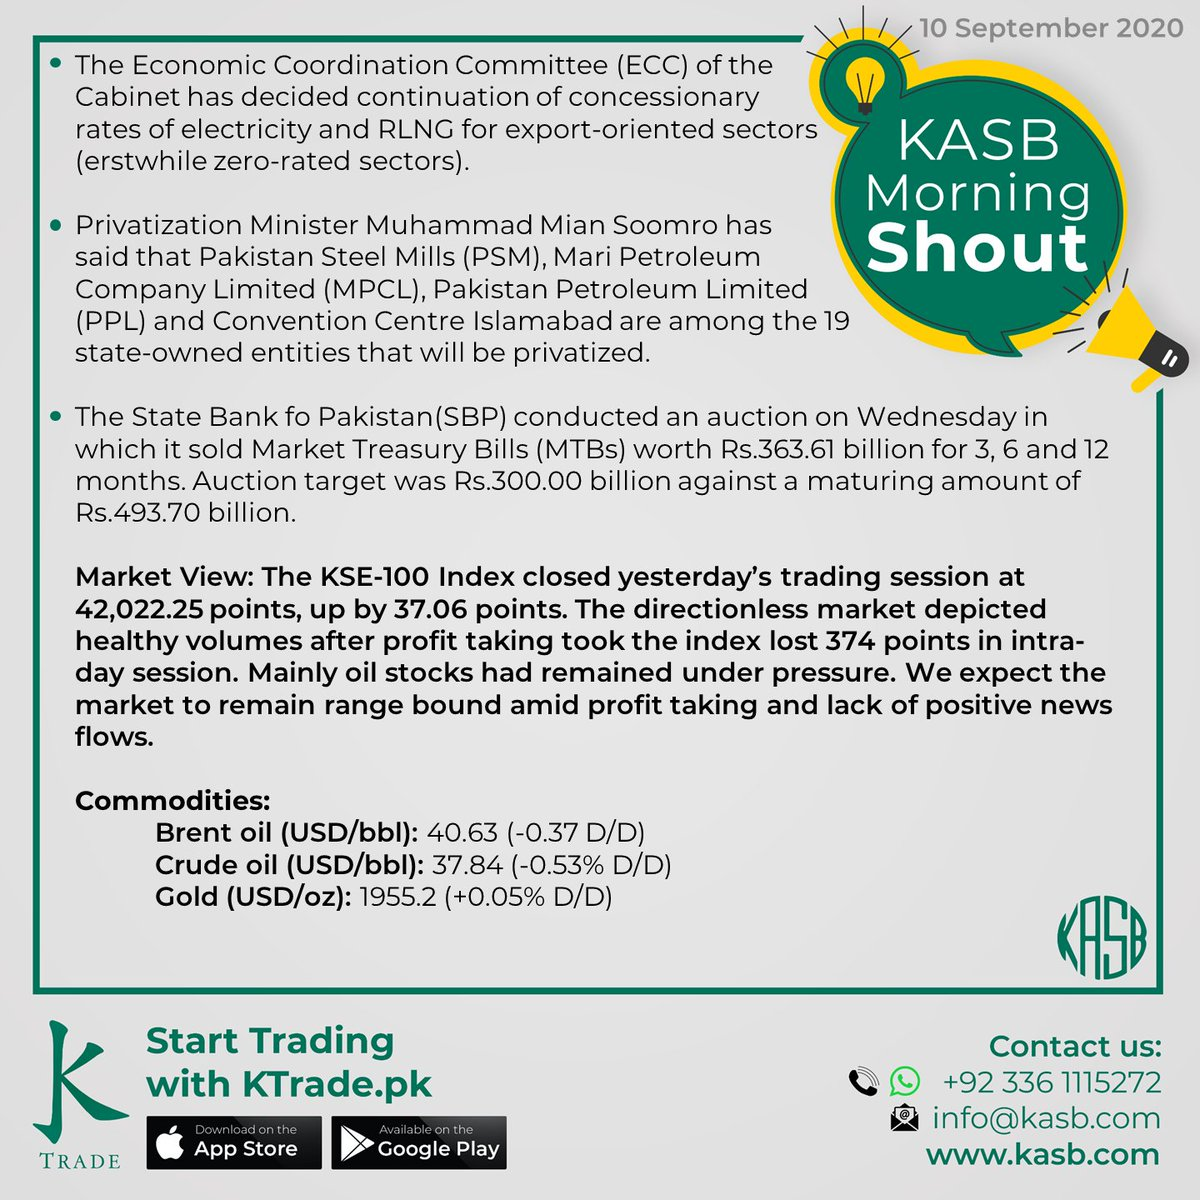 KASB Morning Shout: Our views on today's news #kasb #smartinvesting #psx #stockmarket #KTrade #onlinetrading #pakistaneconomy #imrankhan #sbp #inflation #kse100 #brokeragehouse #psxstocks #marketupdate #emergingmarkets #frontiermarkets #news #morning #today #views https://t.co/IhZ2v1z0Mm